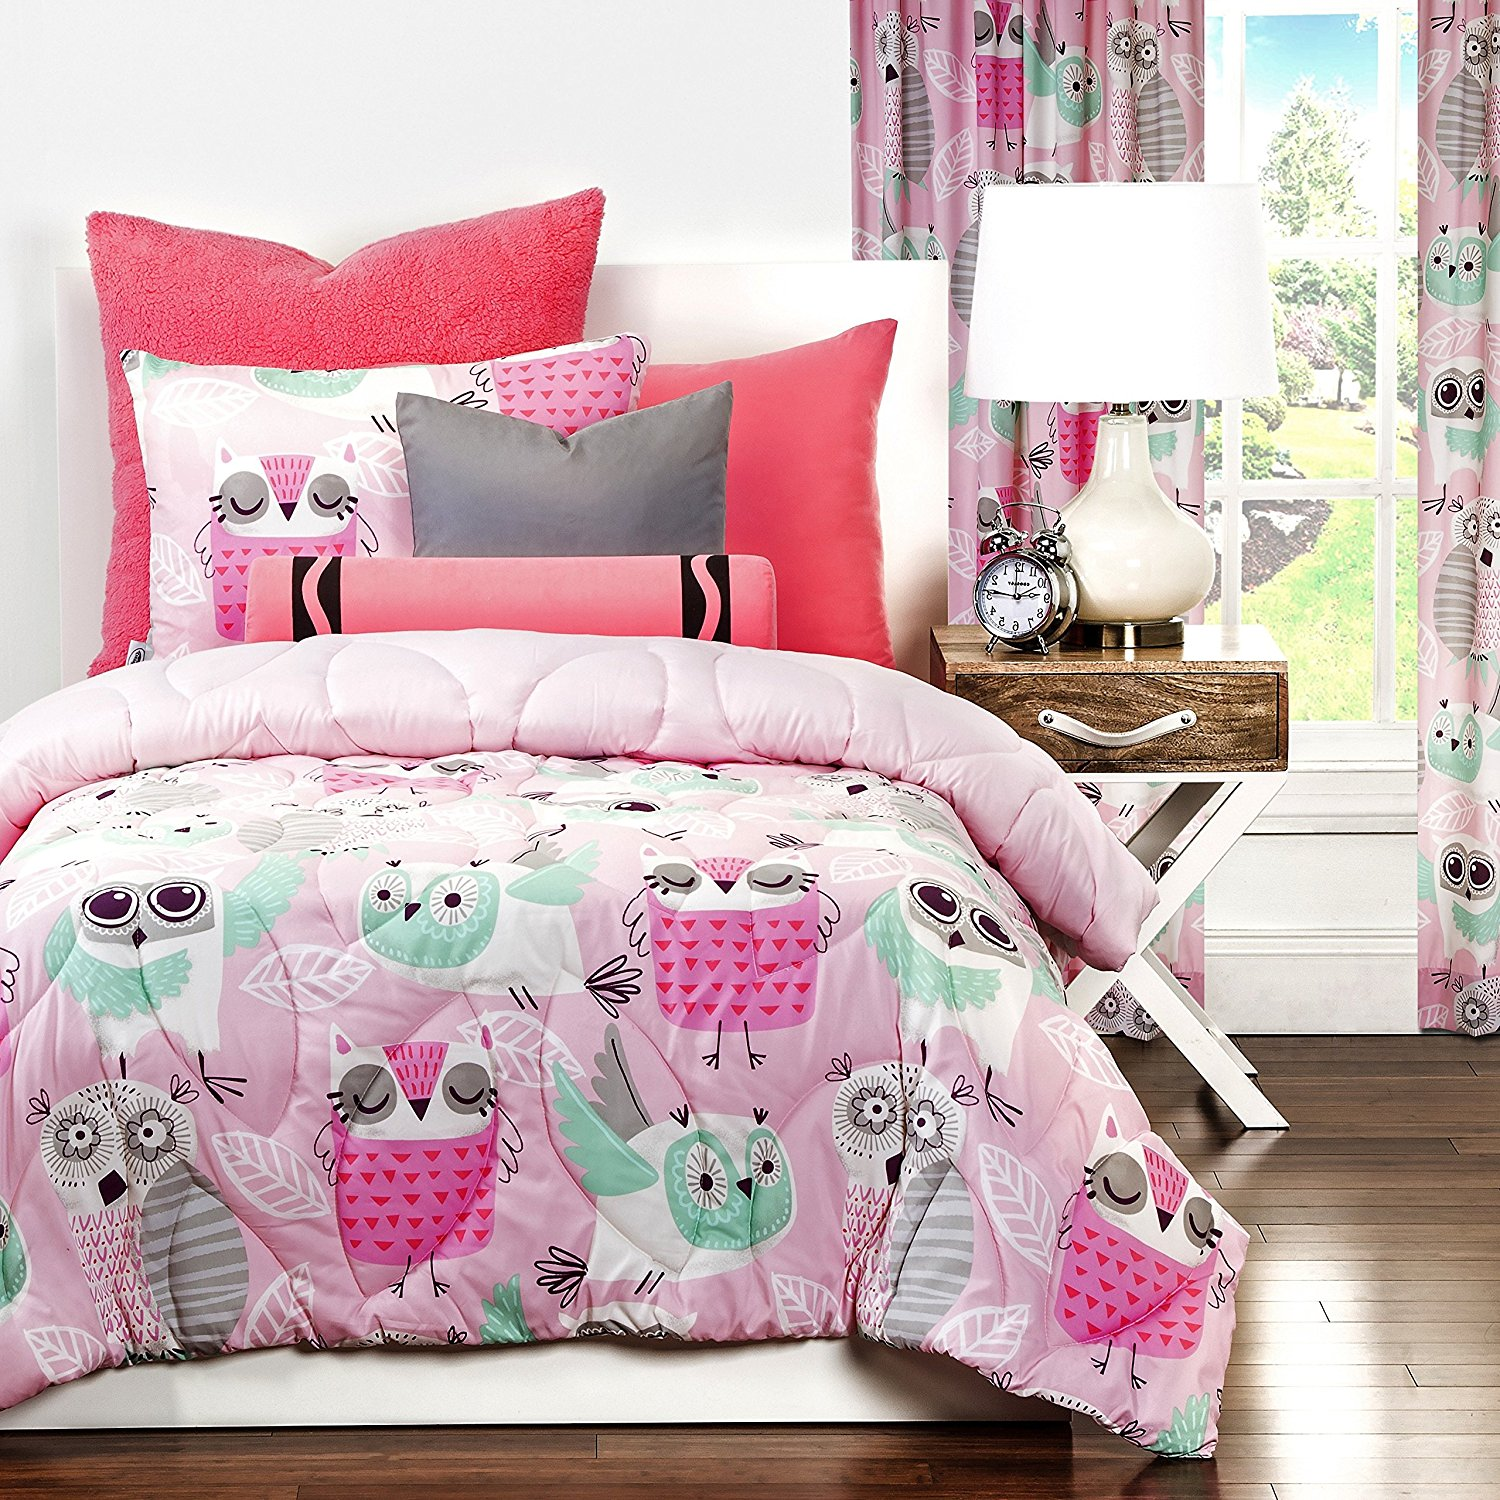 D&H 2 Piece Girls Rose Purple Aqua Blue Night Owl Comforter Twin Set, Multi Color Nature Themed Leaves Bird Animal Print Leaf Design, Cute Reversible Solid Pink Kids Bedding Teen Bedroom, Microfiber